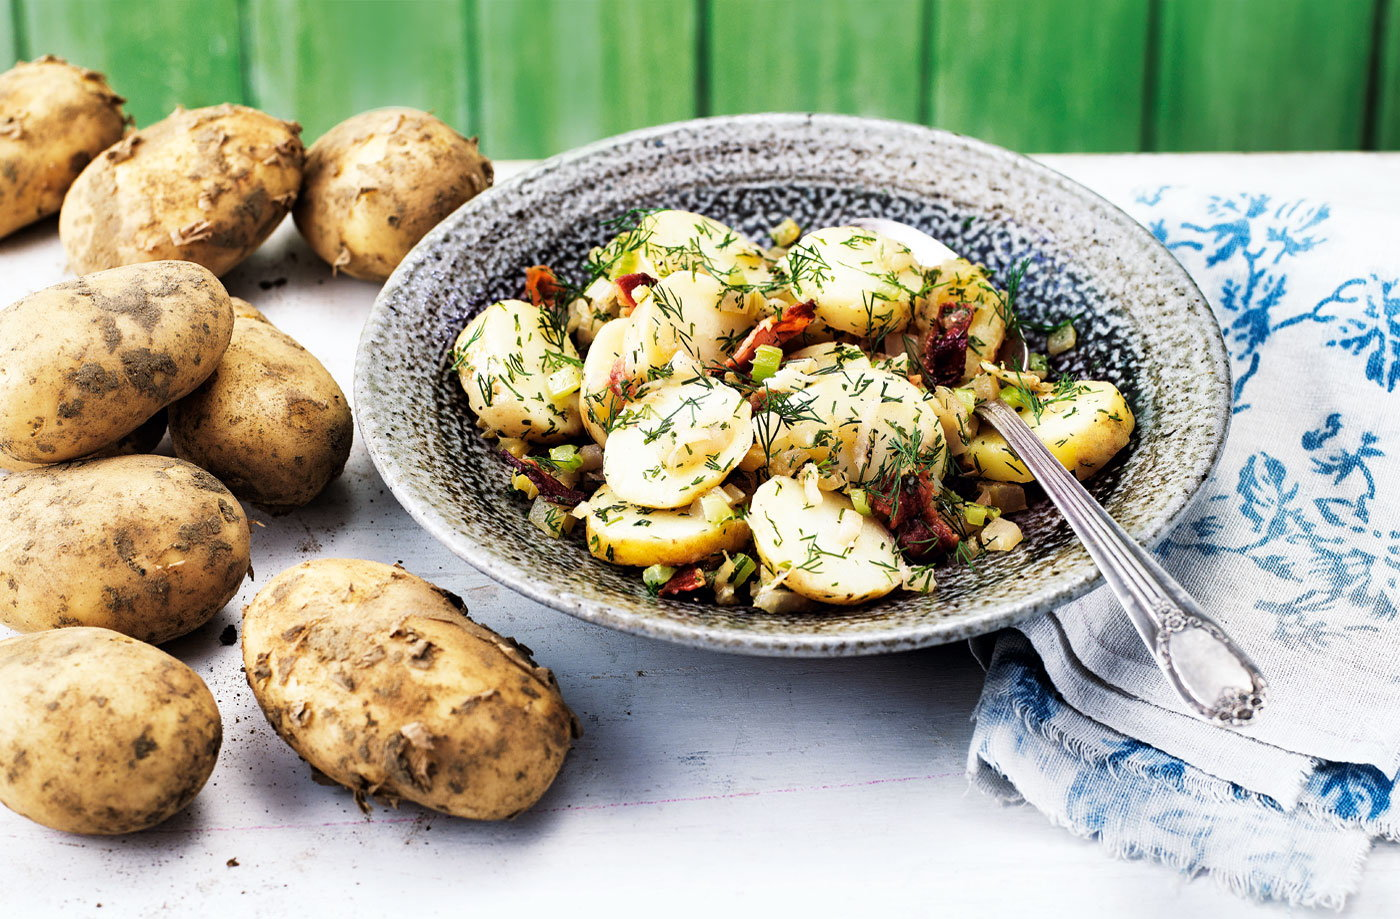 Jersey Royal potato salad with celery, fennel and pancetta recipe